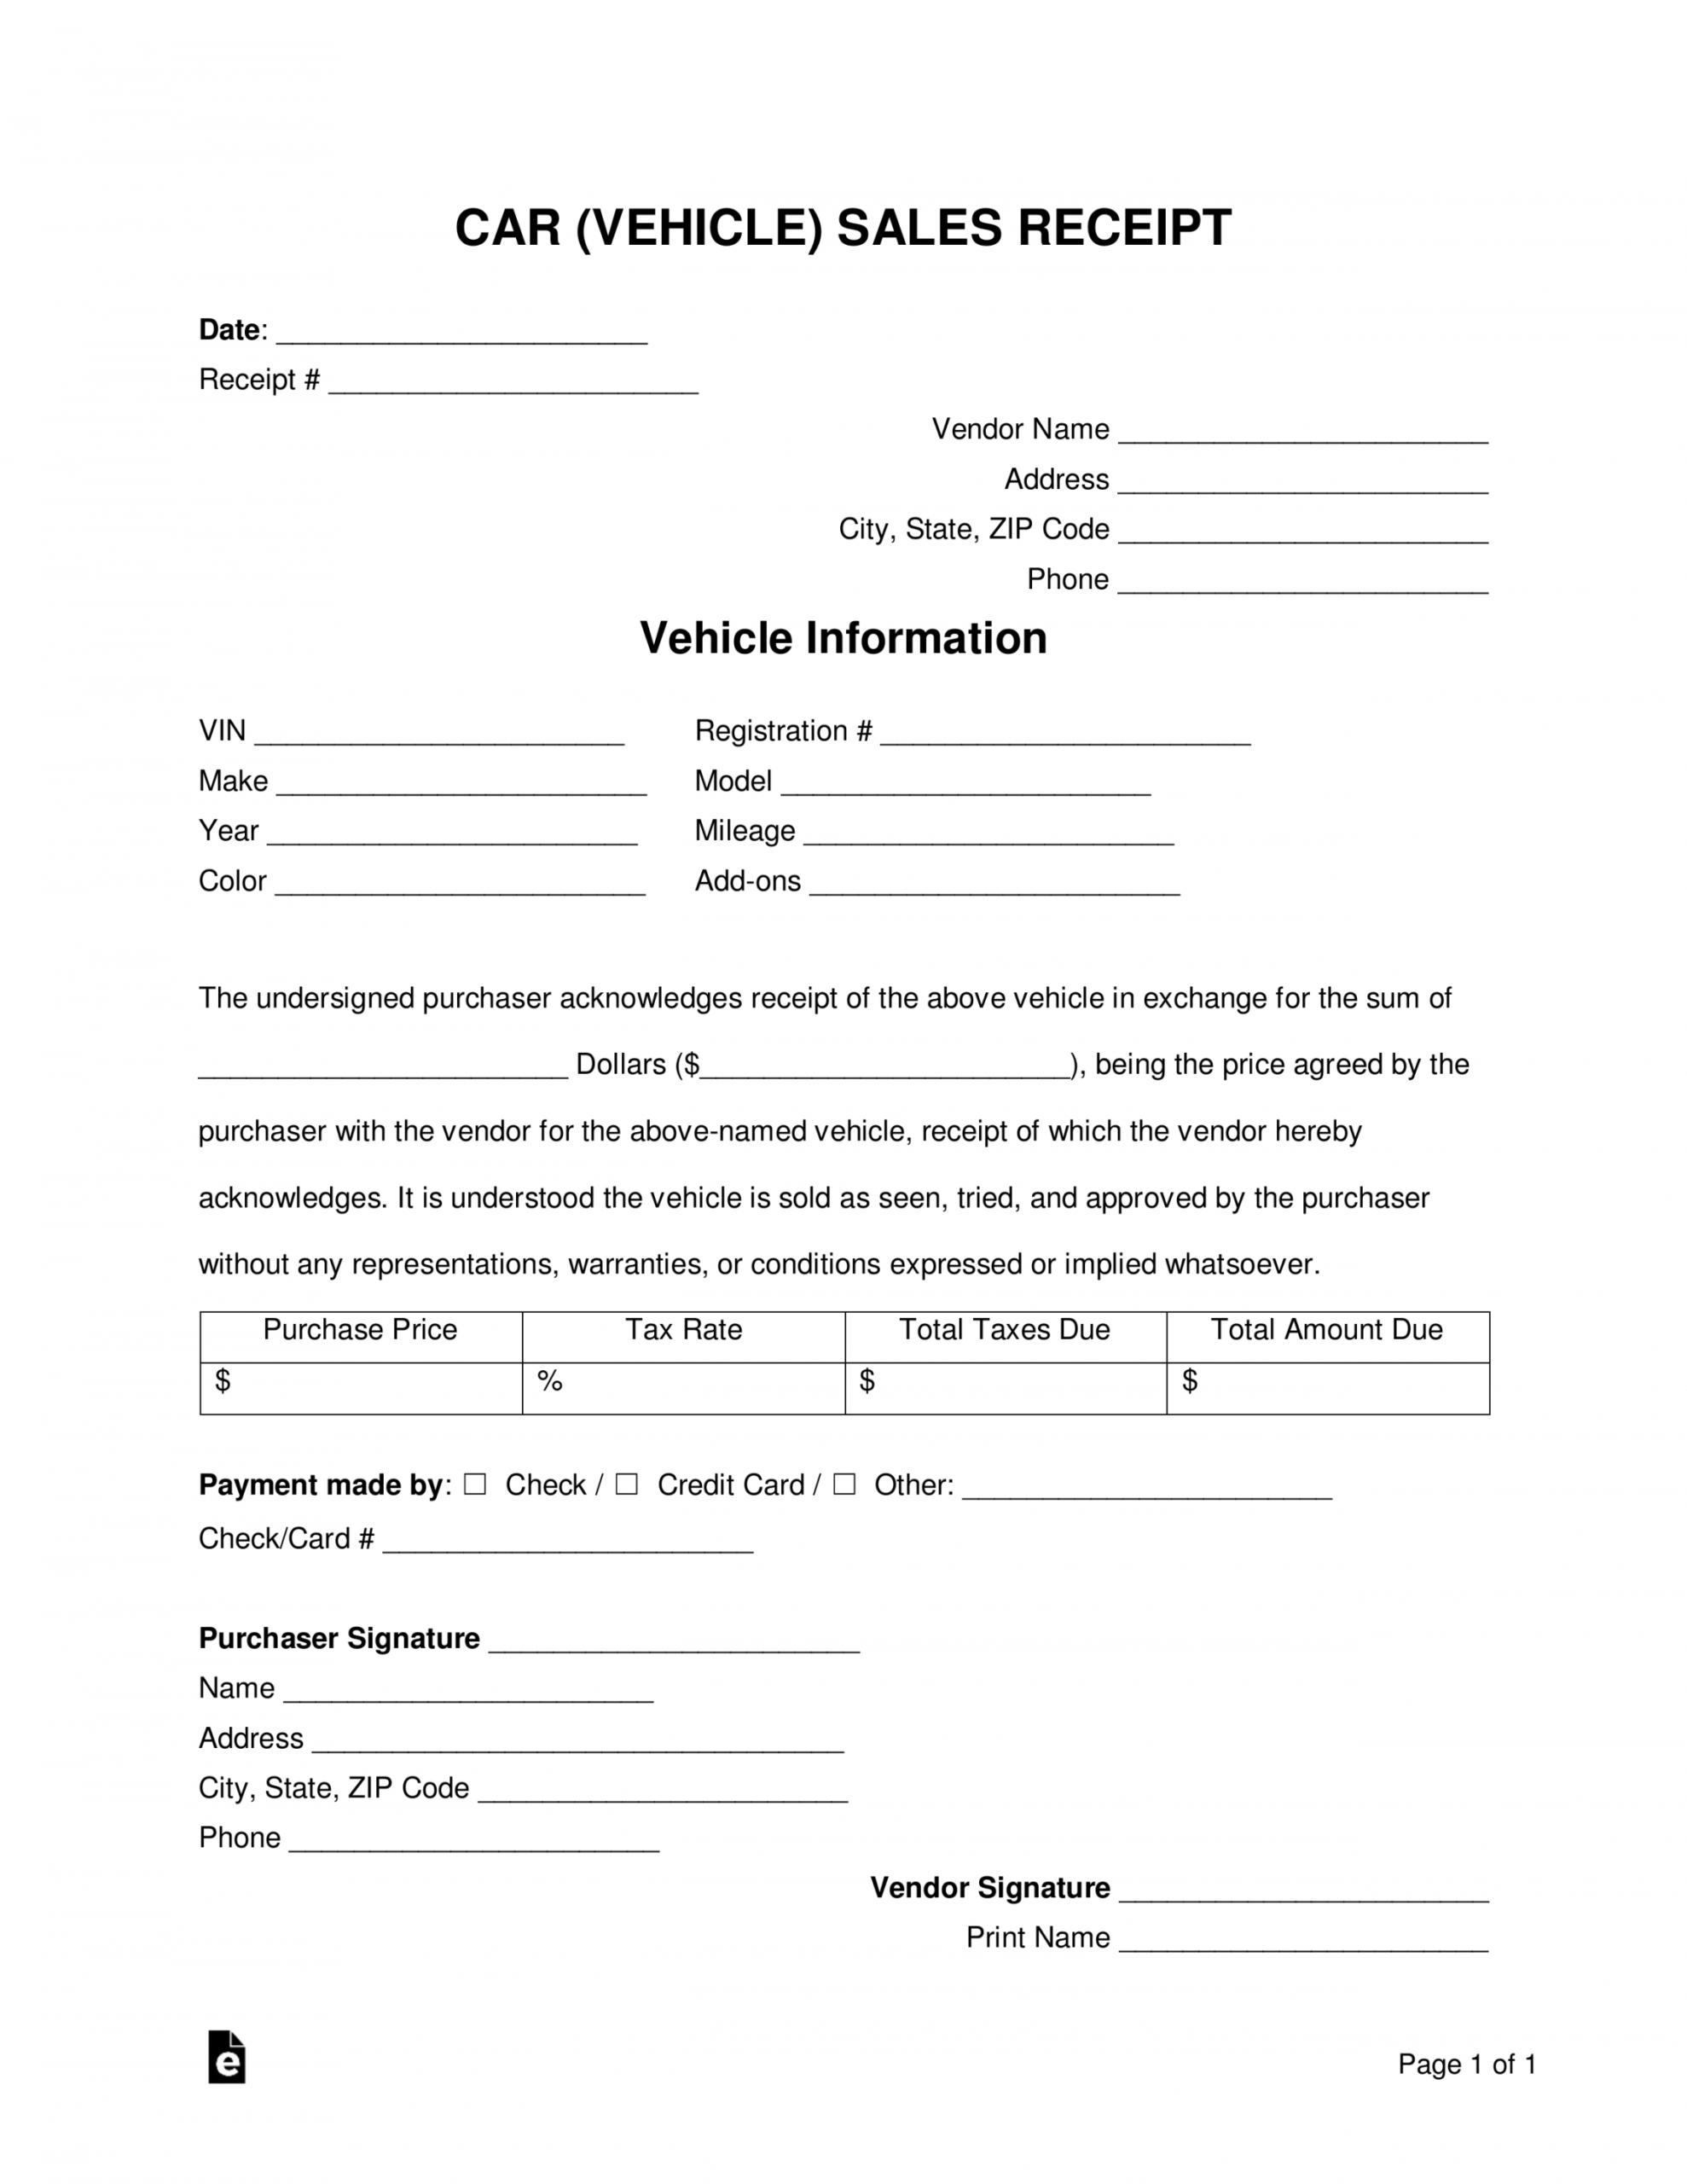 Get Our Example Of Private Car Sale Receipt Template Invoice Template Receipt Template Cars For Sale